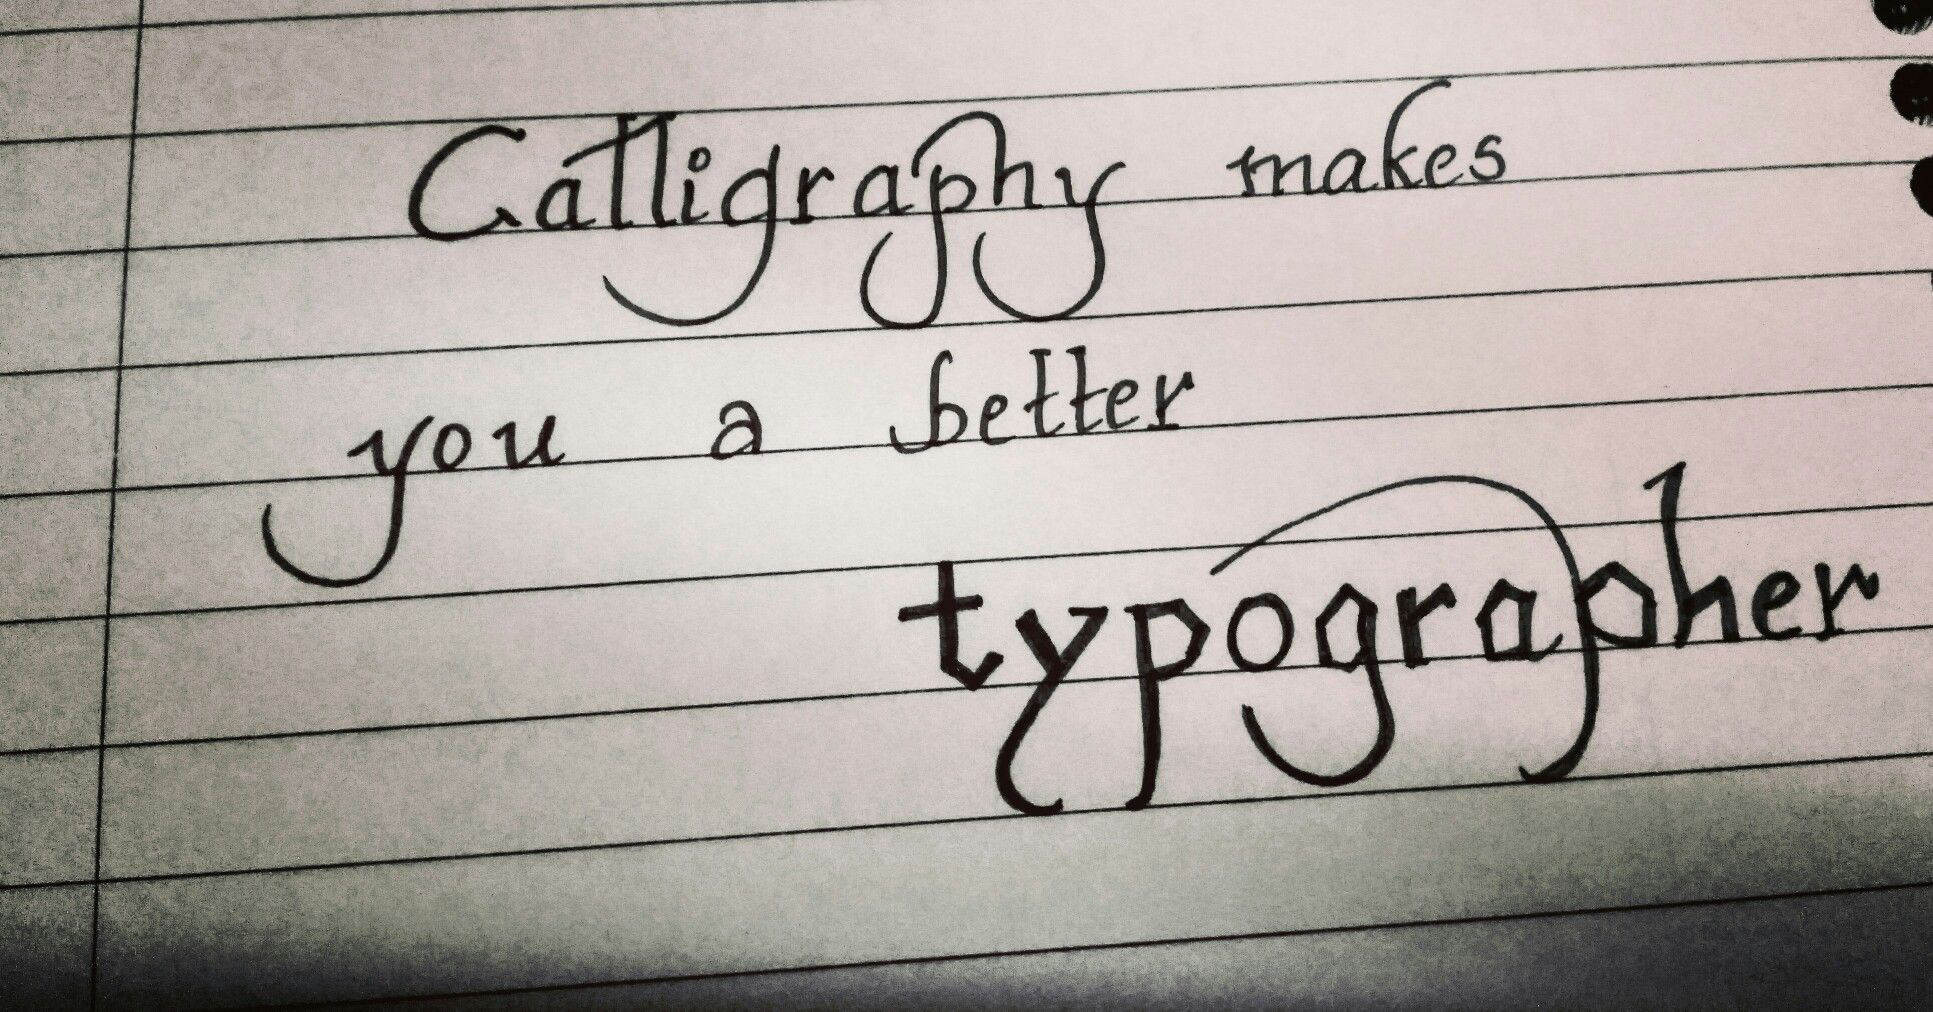 Pin By Charisma Israeline On Calligraphy